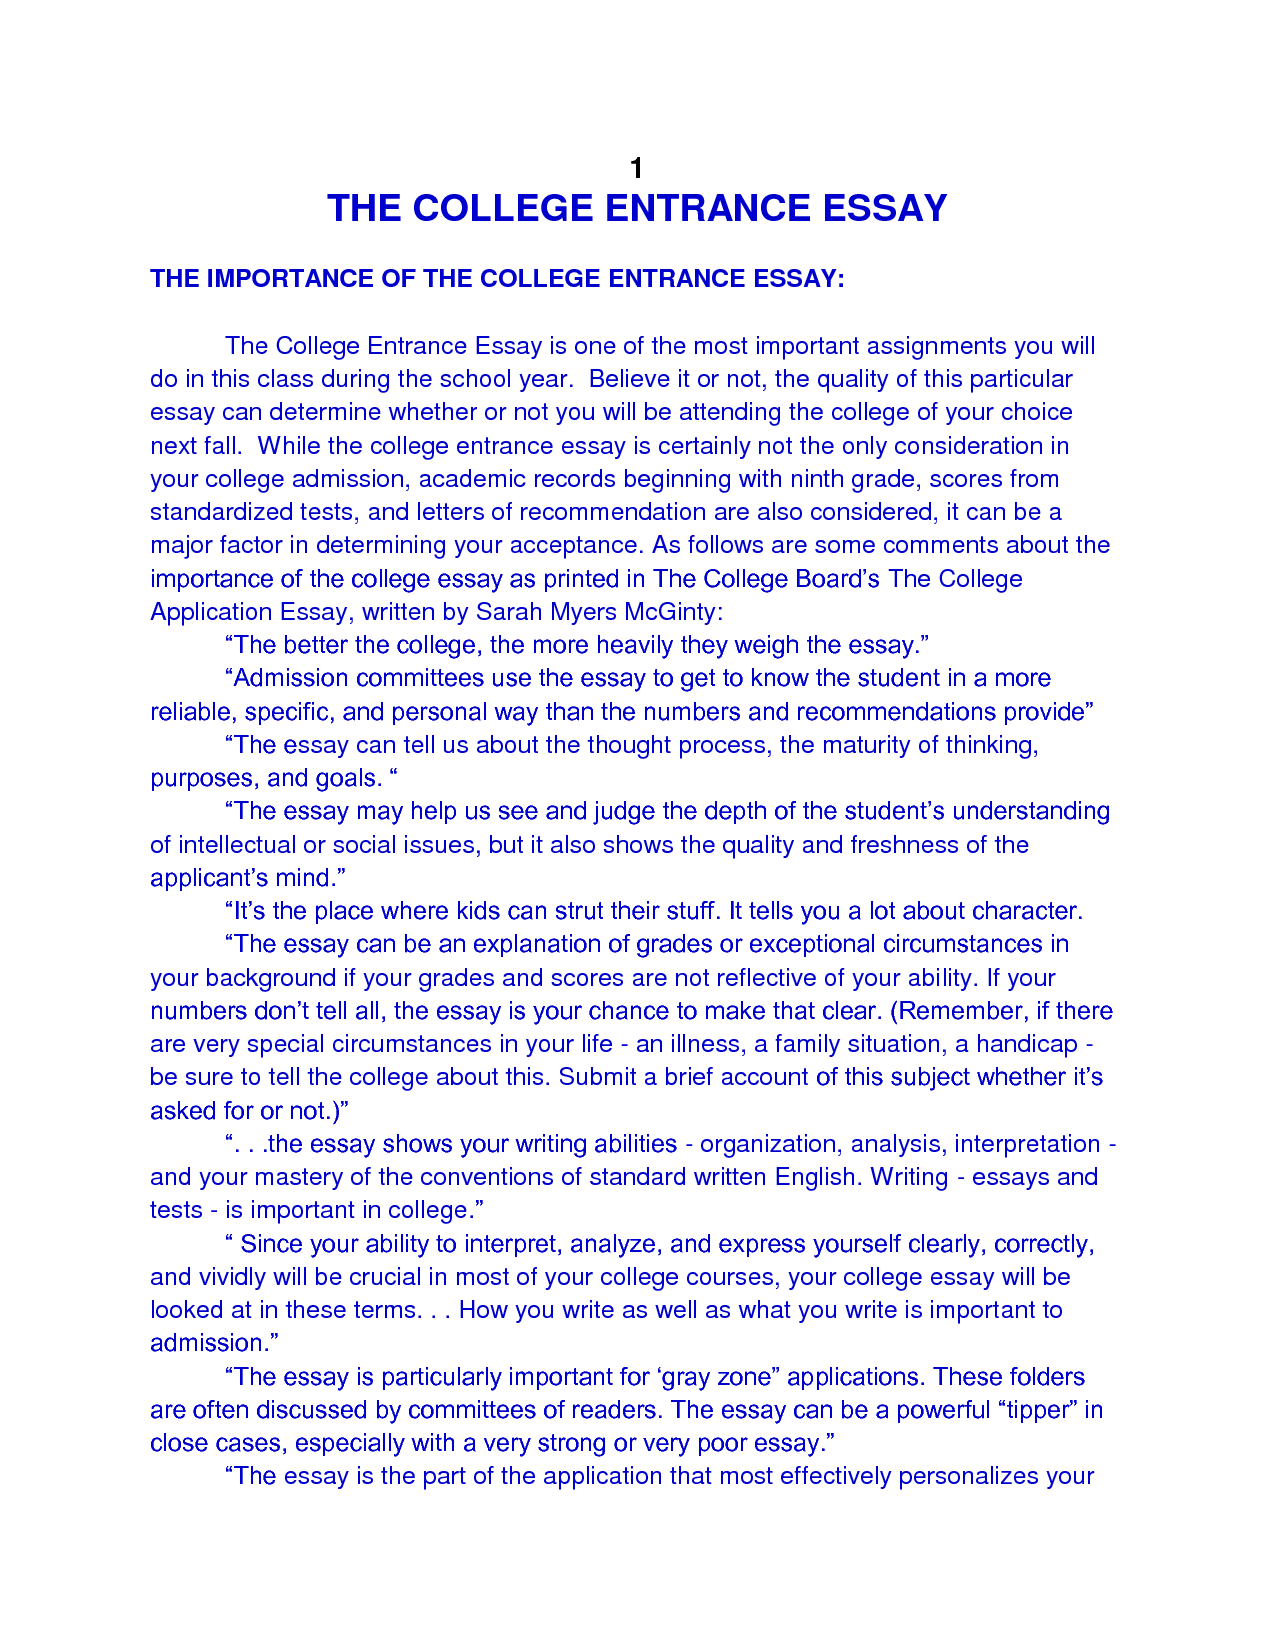 006 Jrx8we564g Essay Example College Writing Unusual Help Admission Service Reviews Custom Full